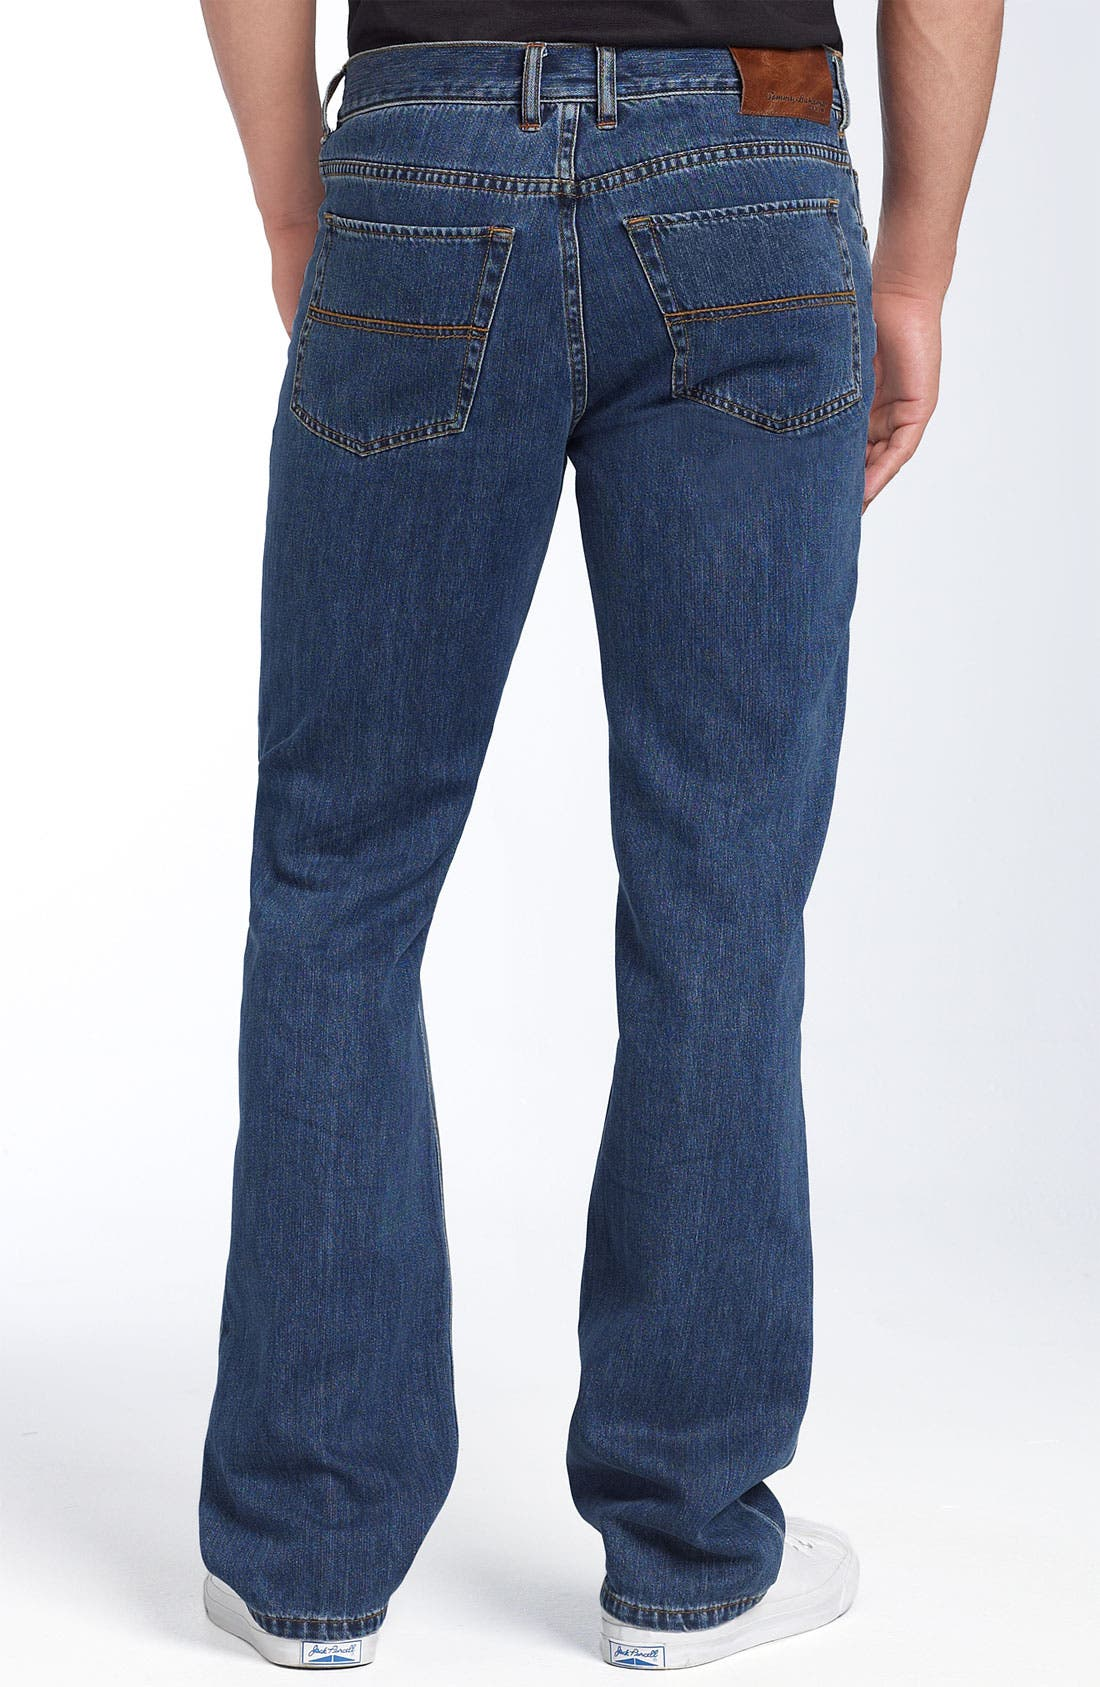 Alternate Image 2  - Tommy Bahama Denim 'Island Ease' Classic Fit Jeans (Medium)